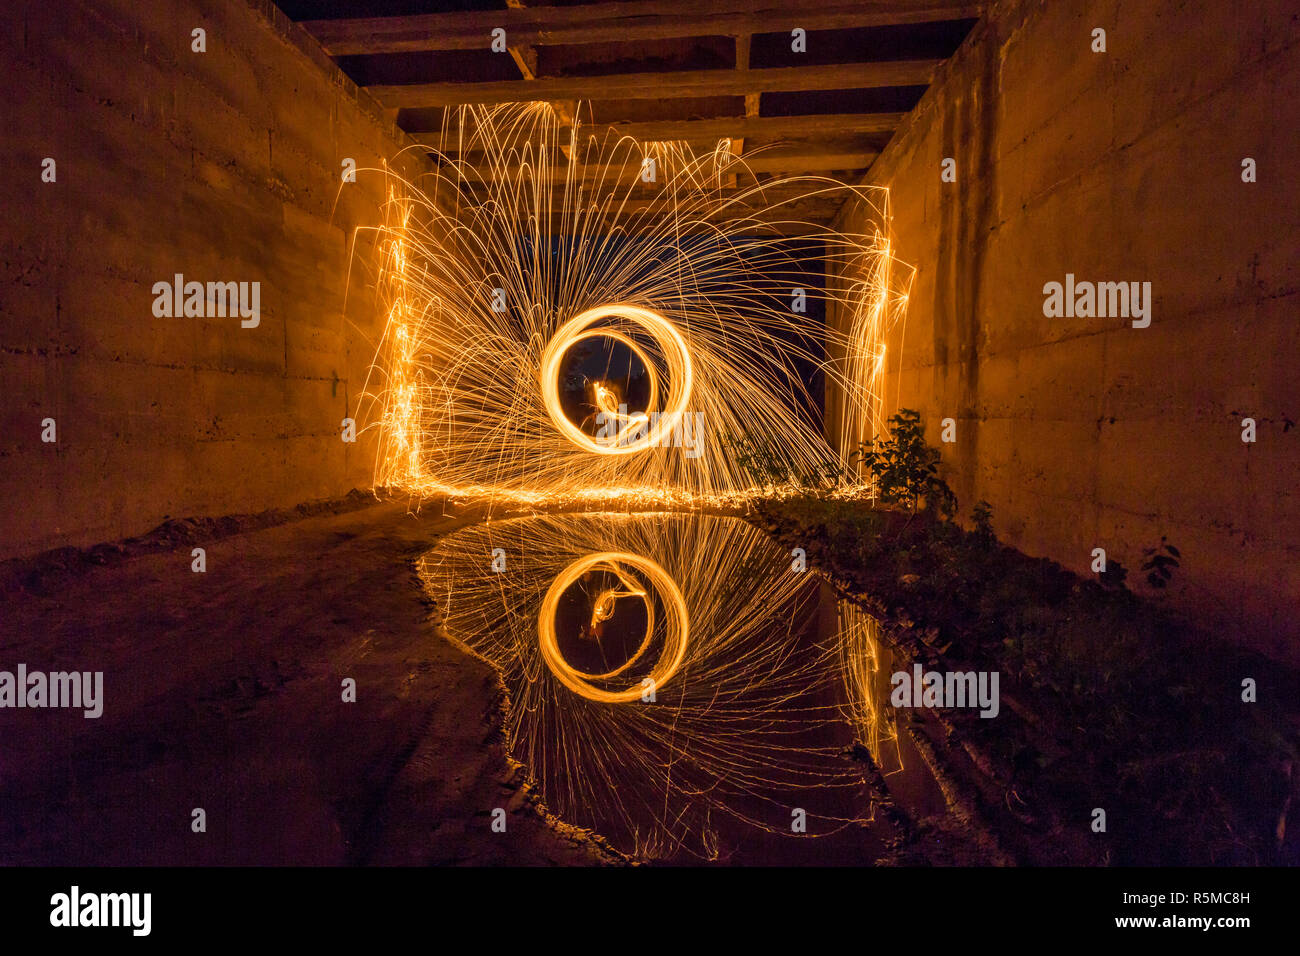 Steel wool spinning reflected in the water under a bridge Stock Photo